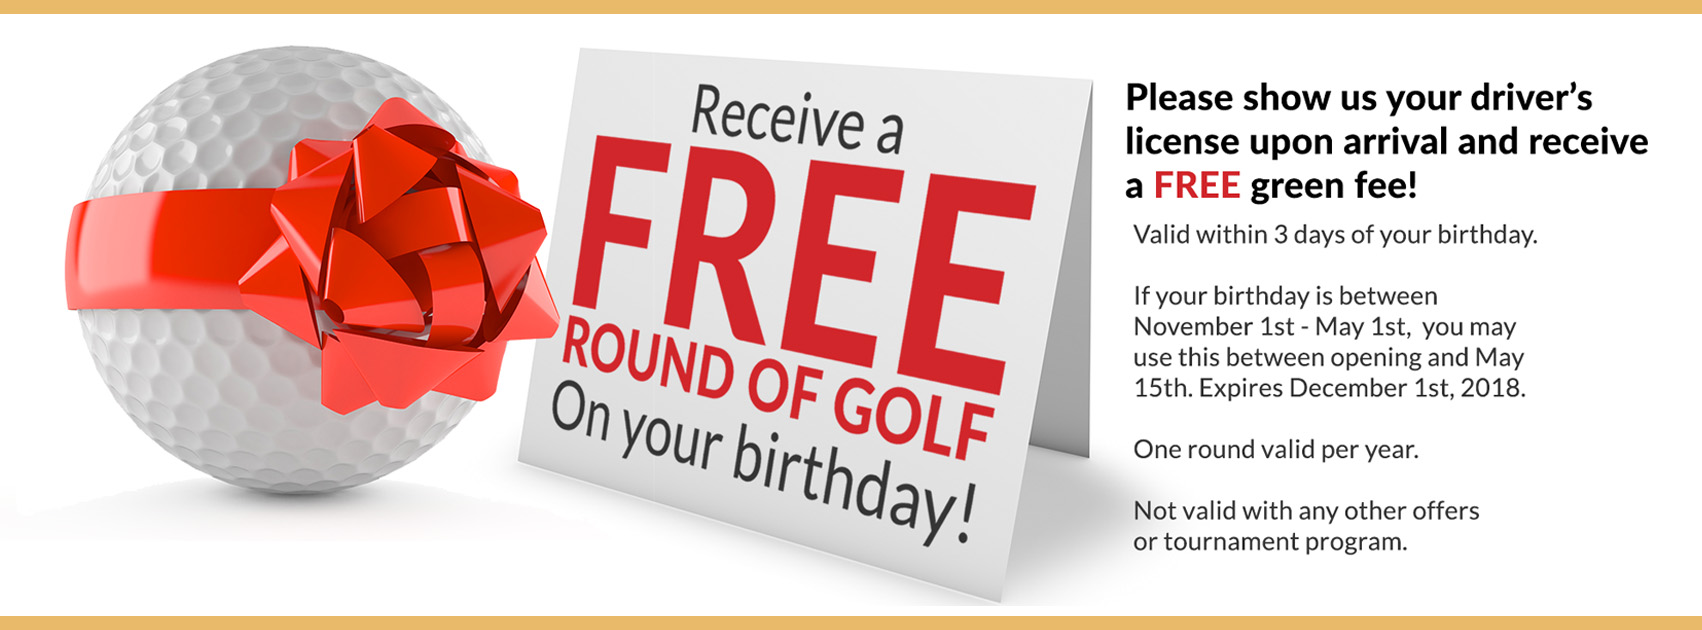 Receive a free round of golf on your birthday! Please show us your driver's license upon arrival and receive a free green fee! Valid within 3 days of your birthday. If your birthday is between November 1st-May 1st, you may use this between opening and May 15th. Expires December 1st 2018. One round valid per year. Not valid with any other offers or tournament program.